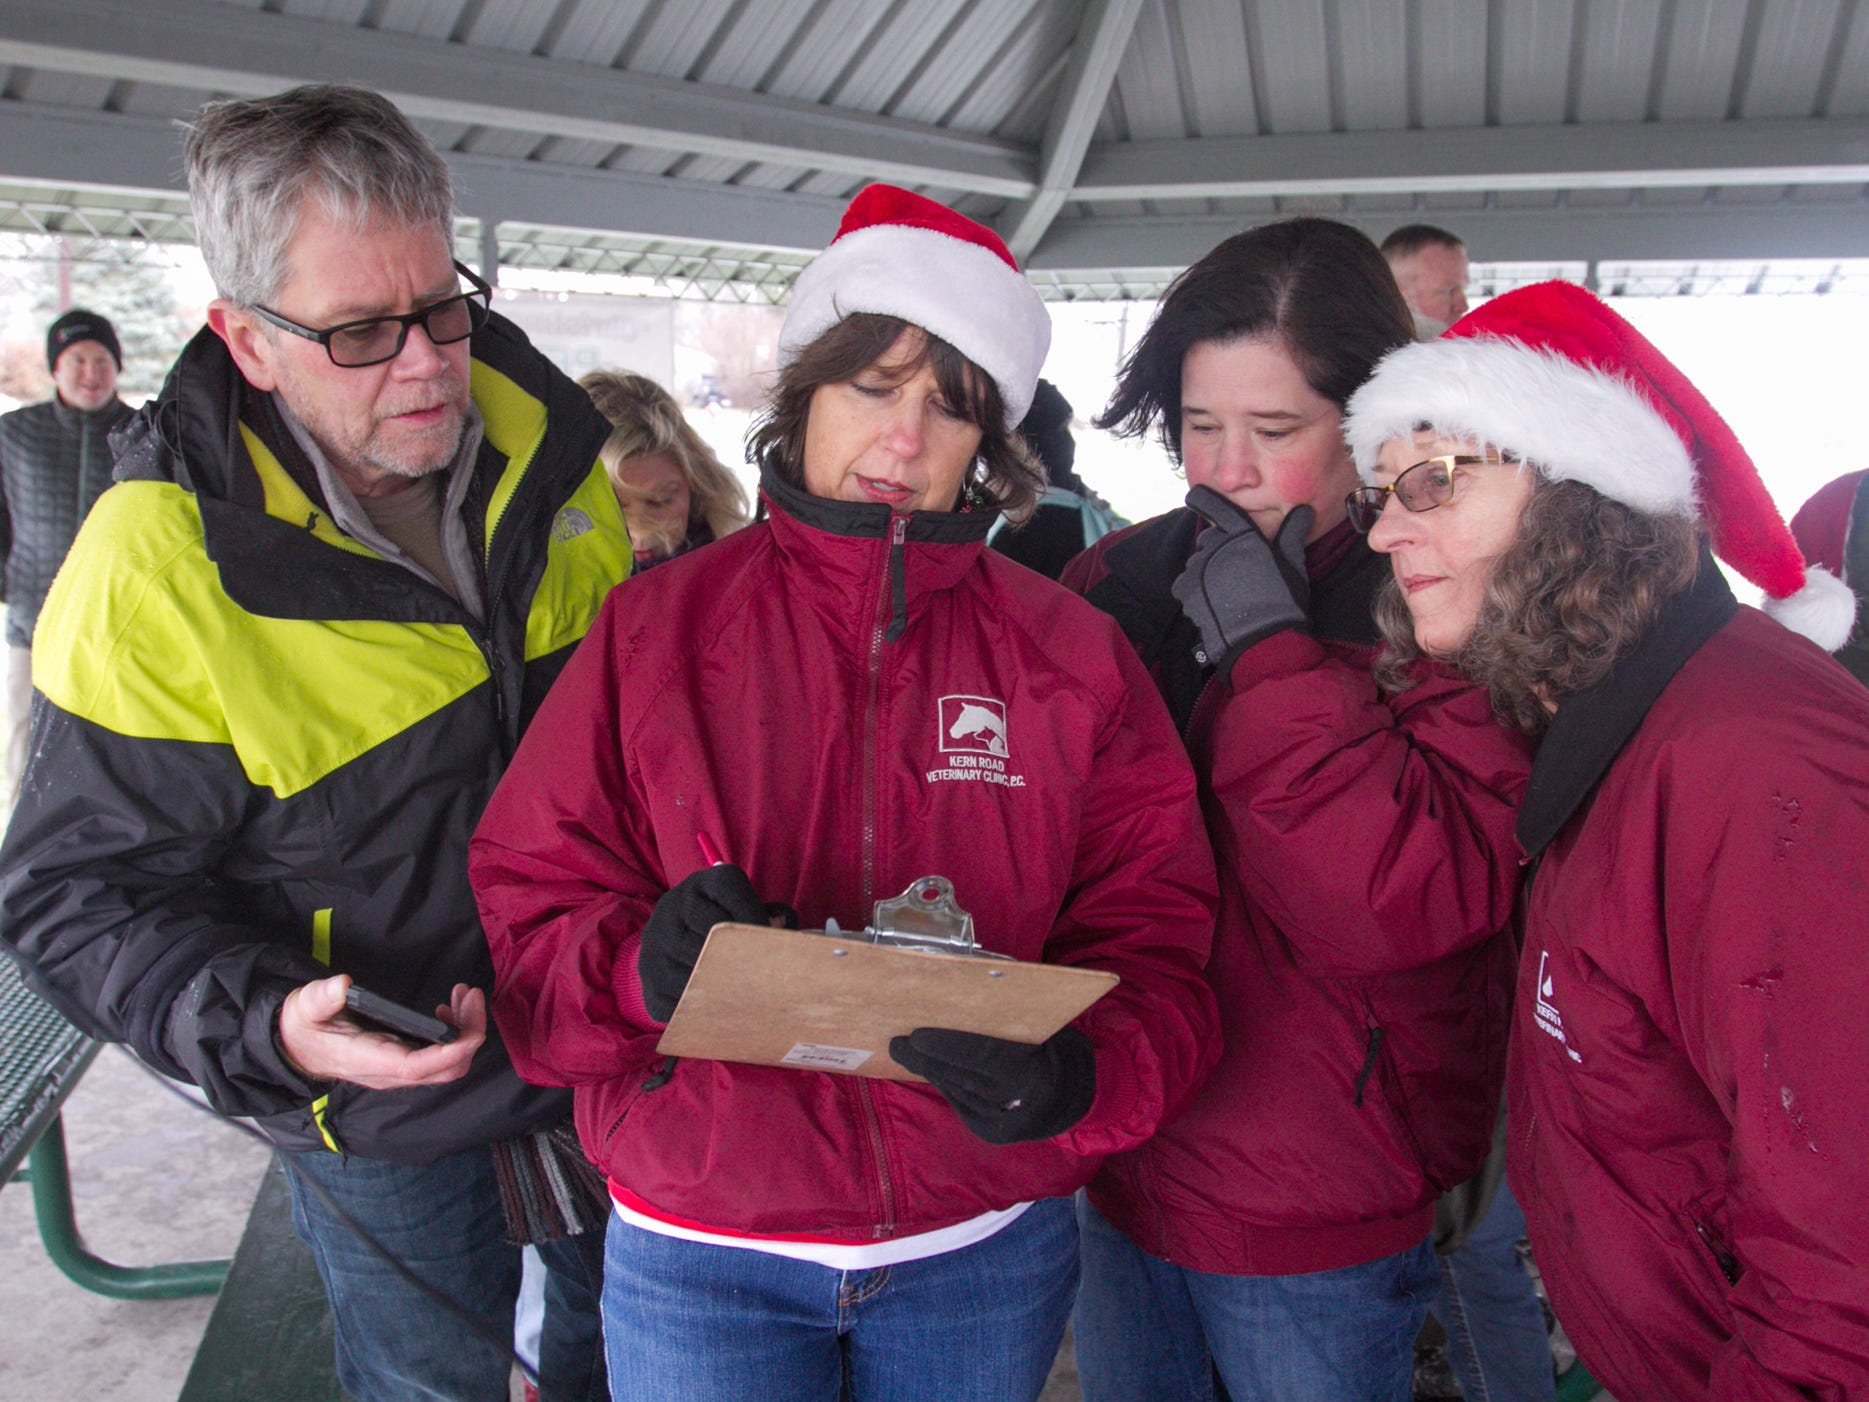 From left, Brian Nordyke, Amy Kirchen, Dr. Bernadette Hermann and Jennifer Koprince of the Kern Road Veterinary Clinic confer on the judging of the pet parade at the Christmas in the 'Ville Saturday, Dec. 1, 2018.